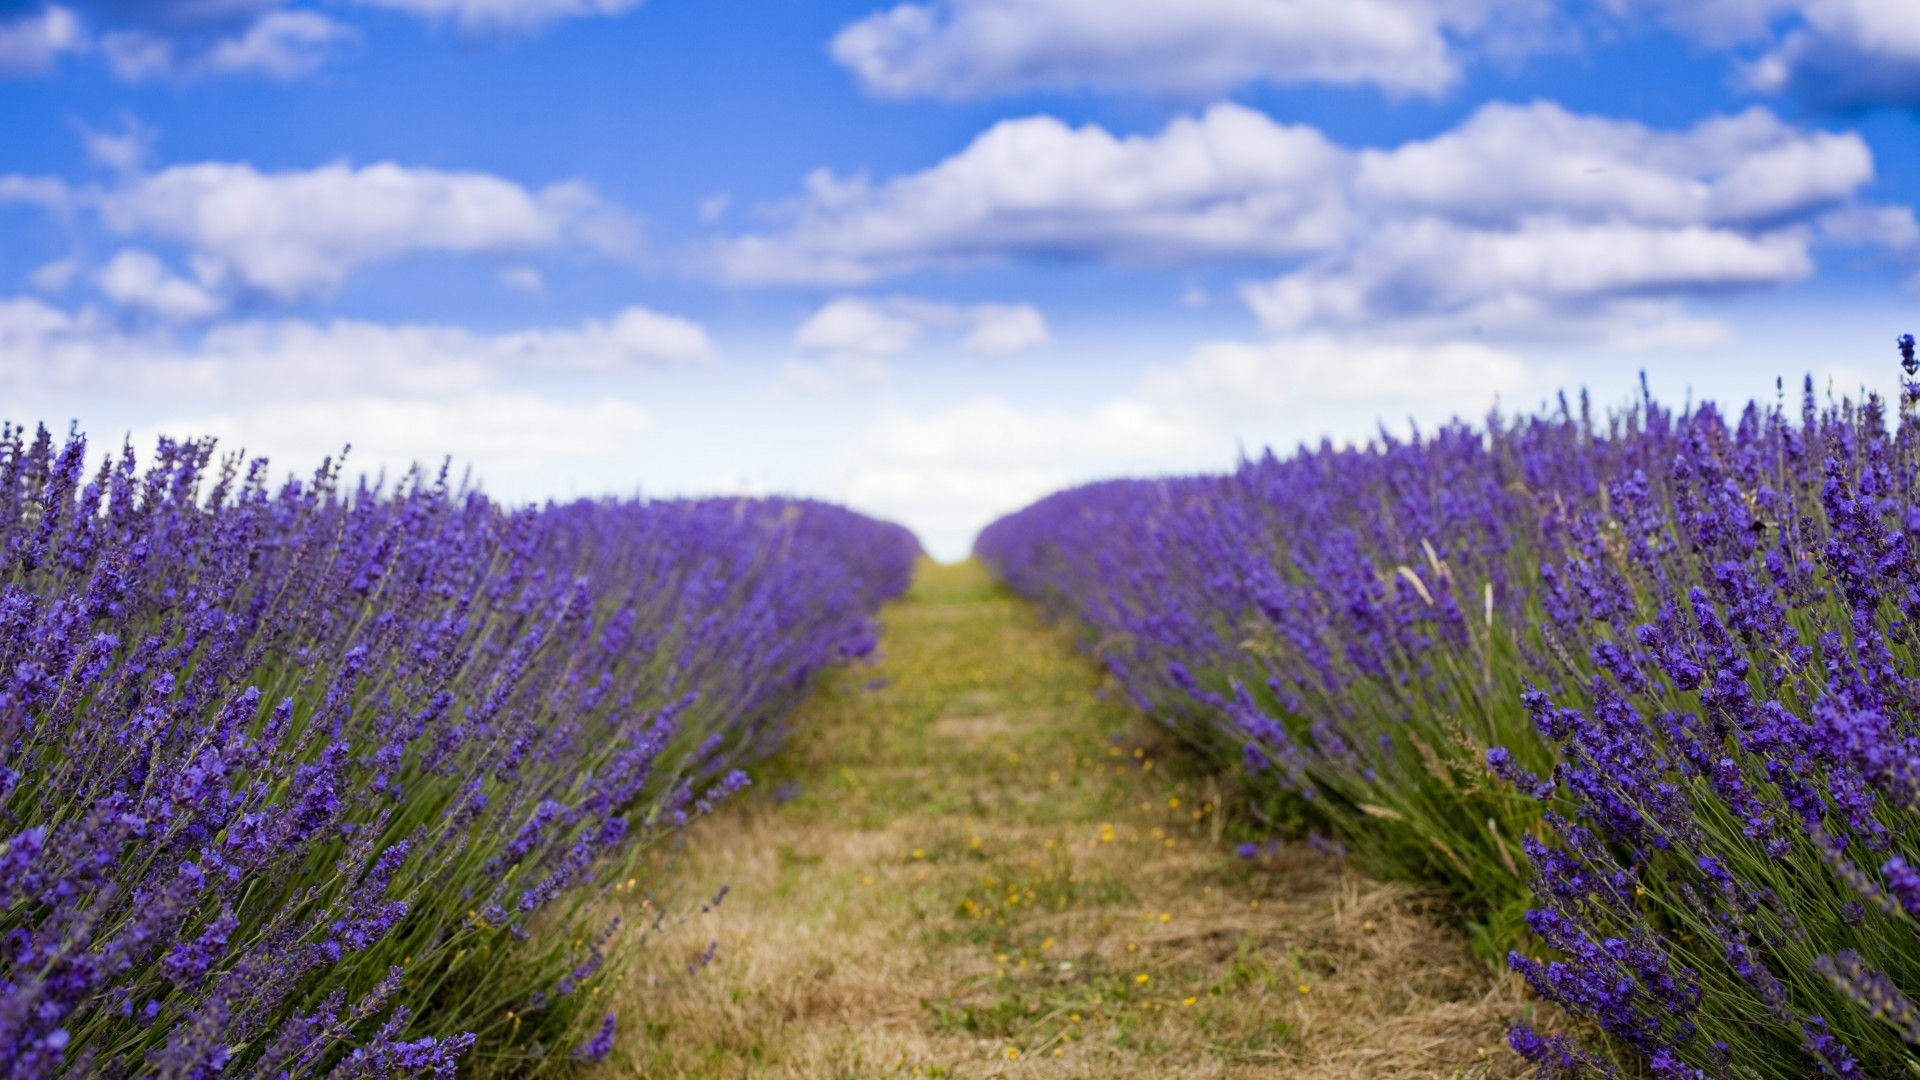 lavender, 5k, 4k wallpaper, 8k, field, flowers, sky, clouds (horizontal)